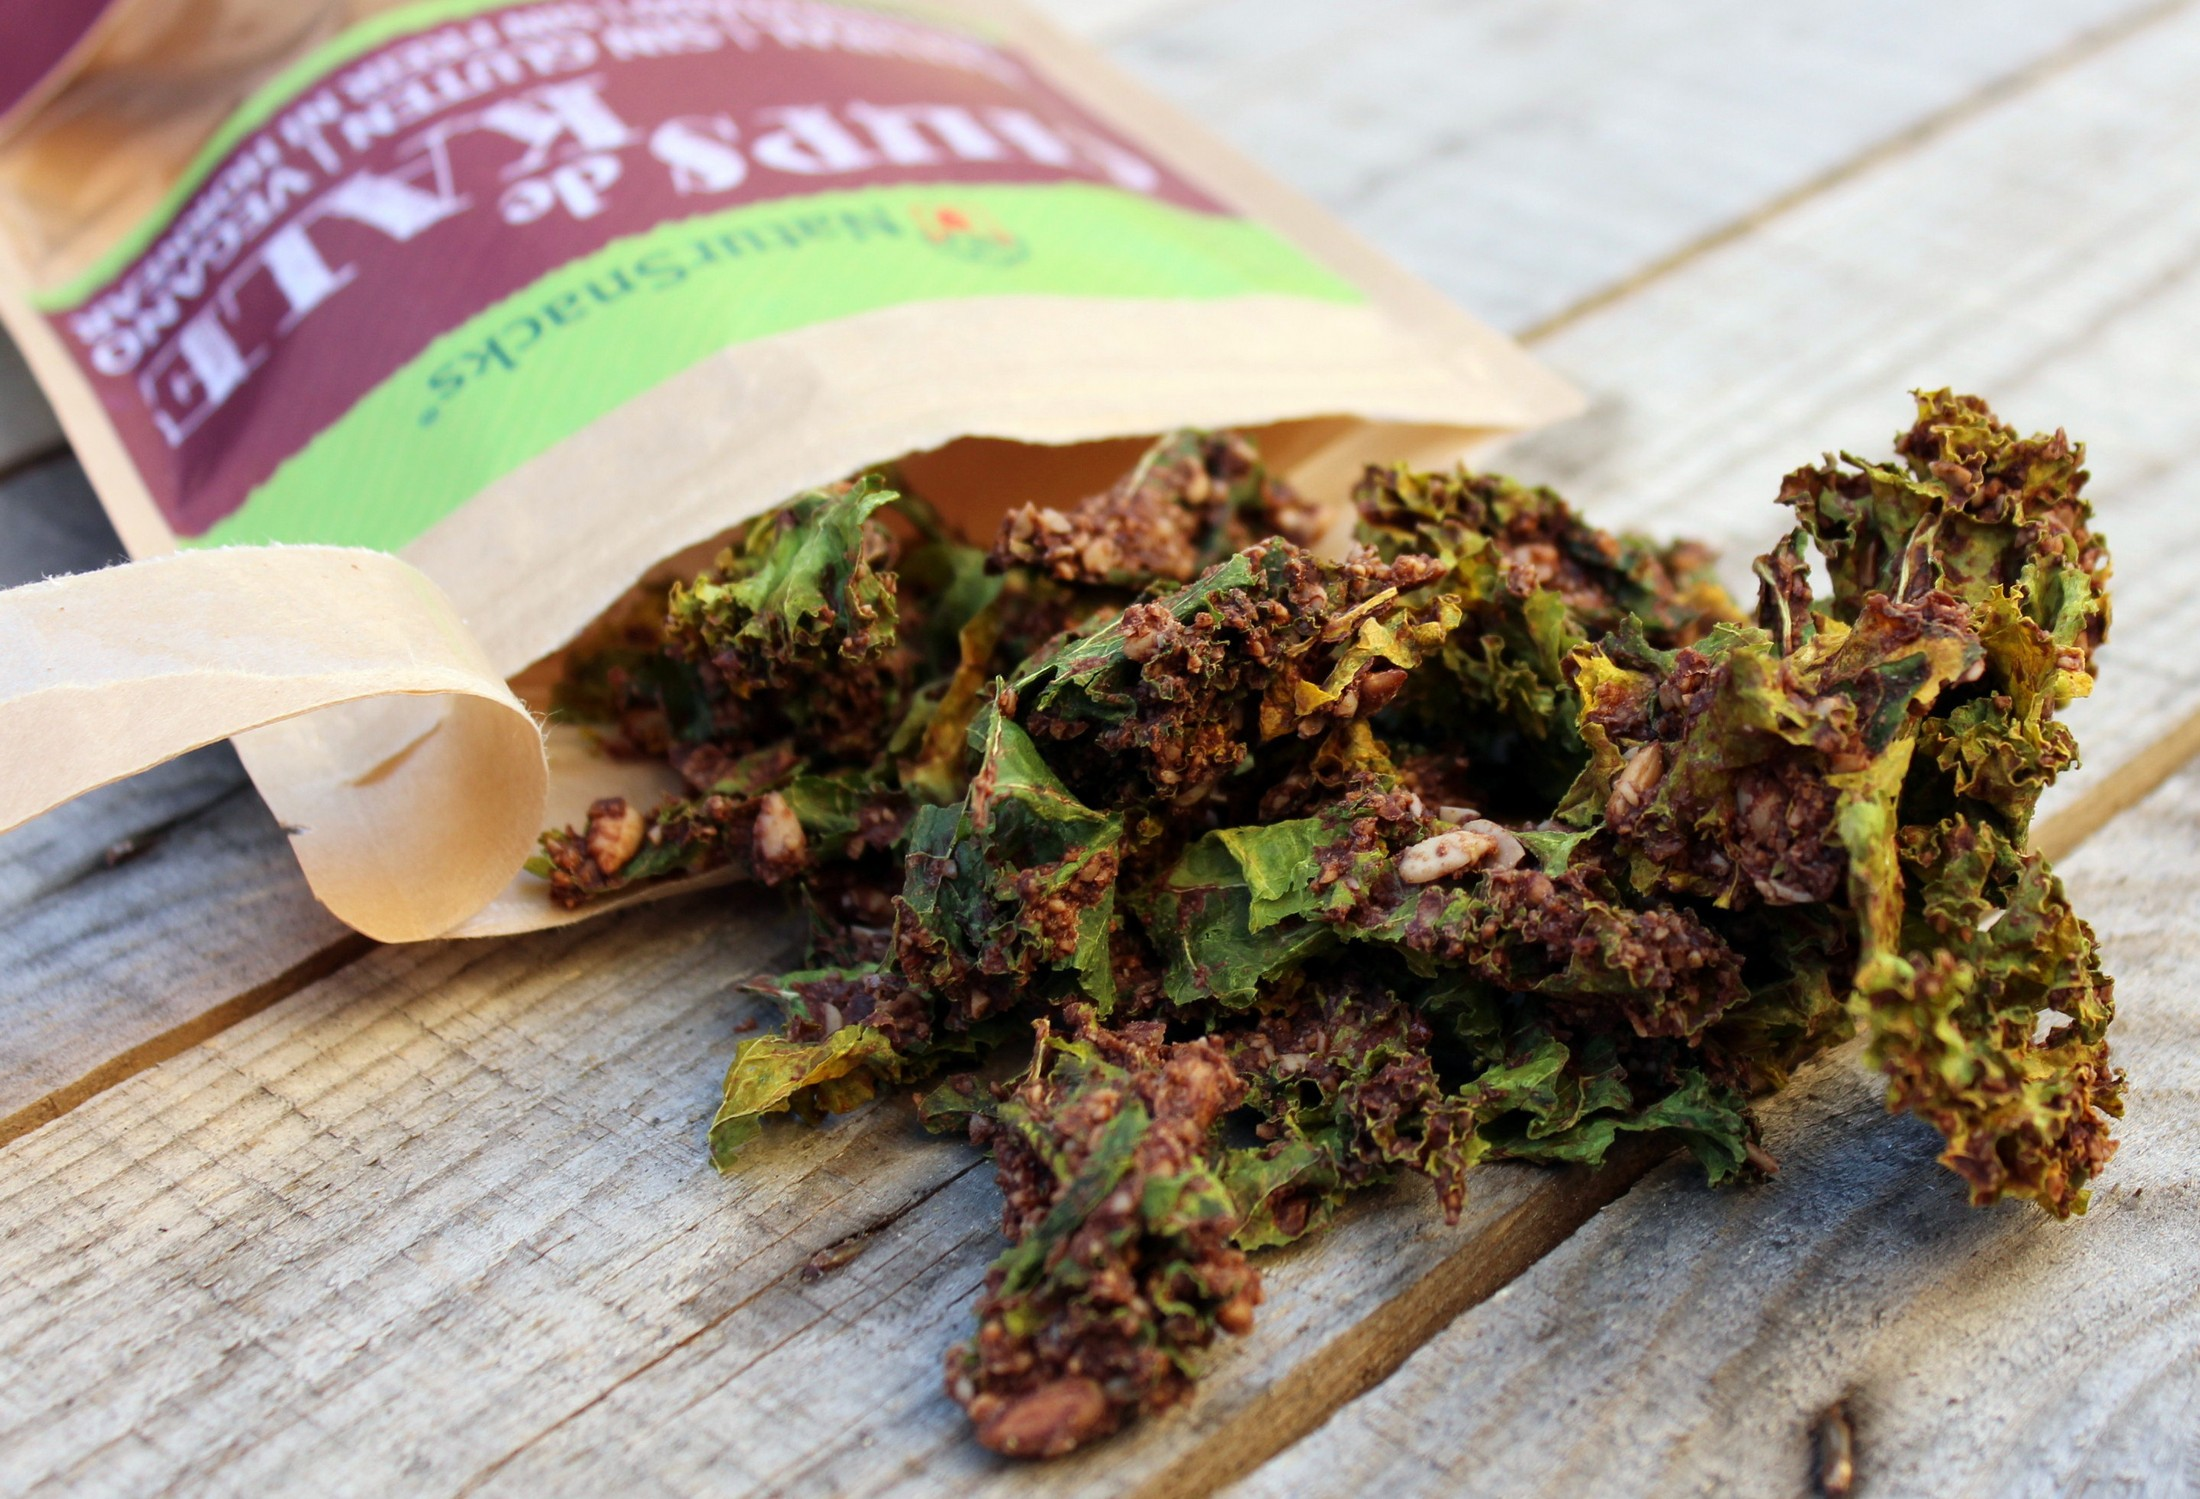 kale-chips-with-chocolate-and-cinnamon